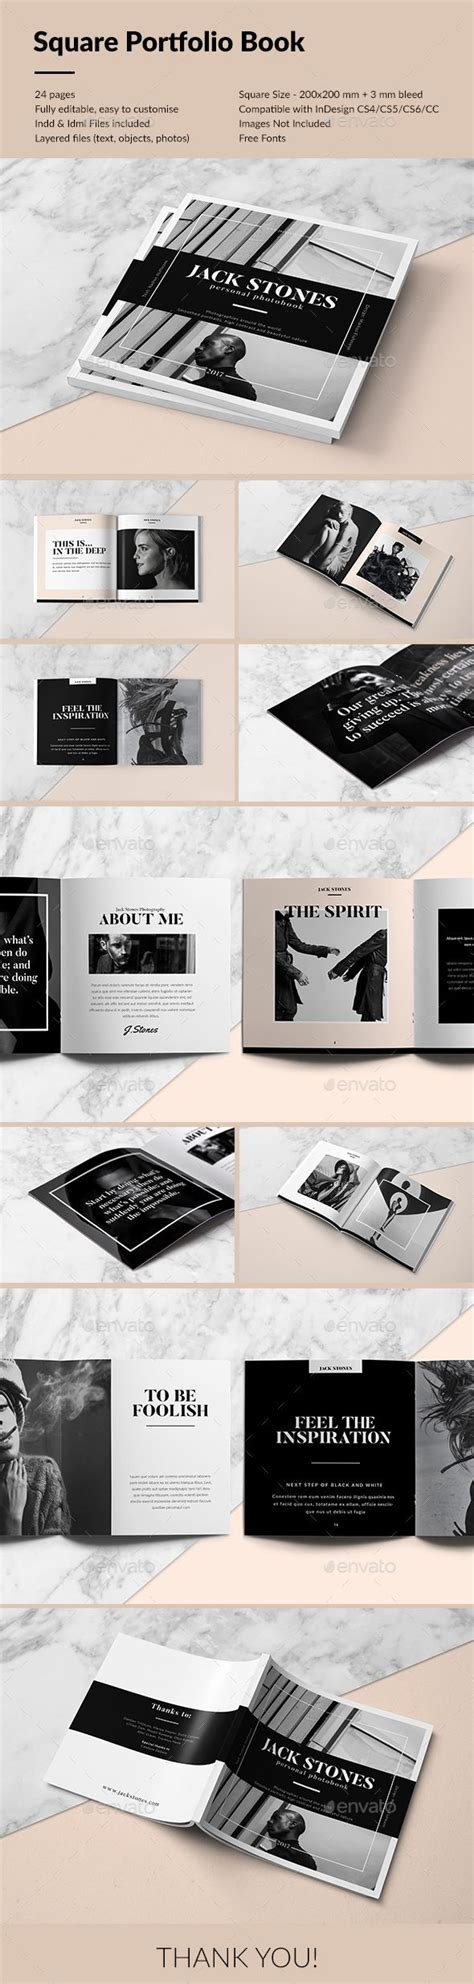 graphic design portfolio layout free download 90 interior design books pdf free download